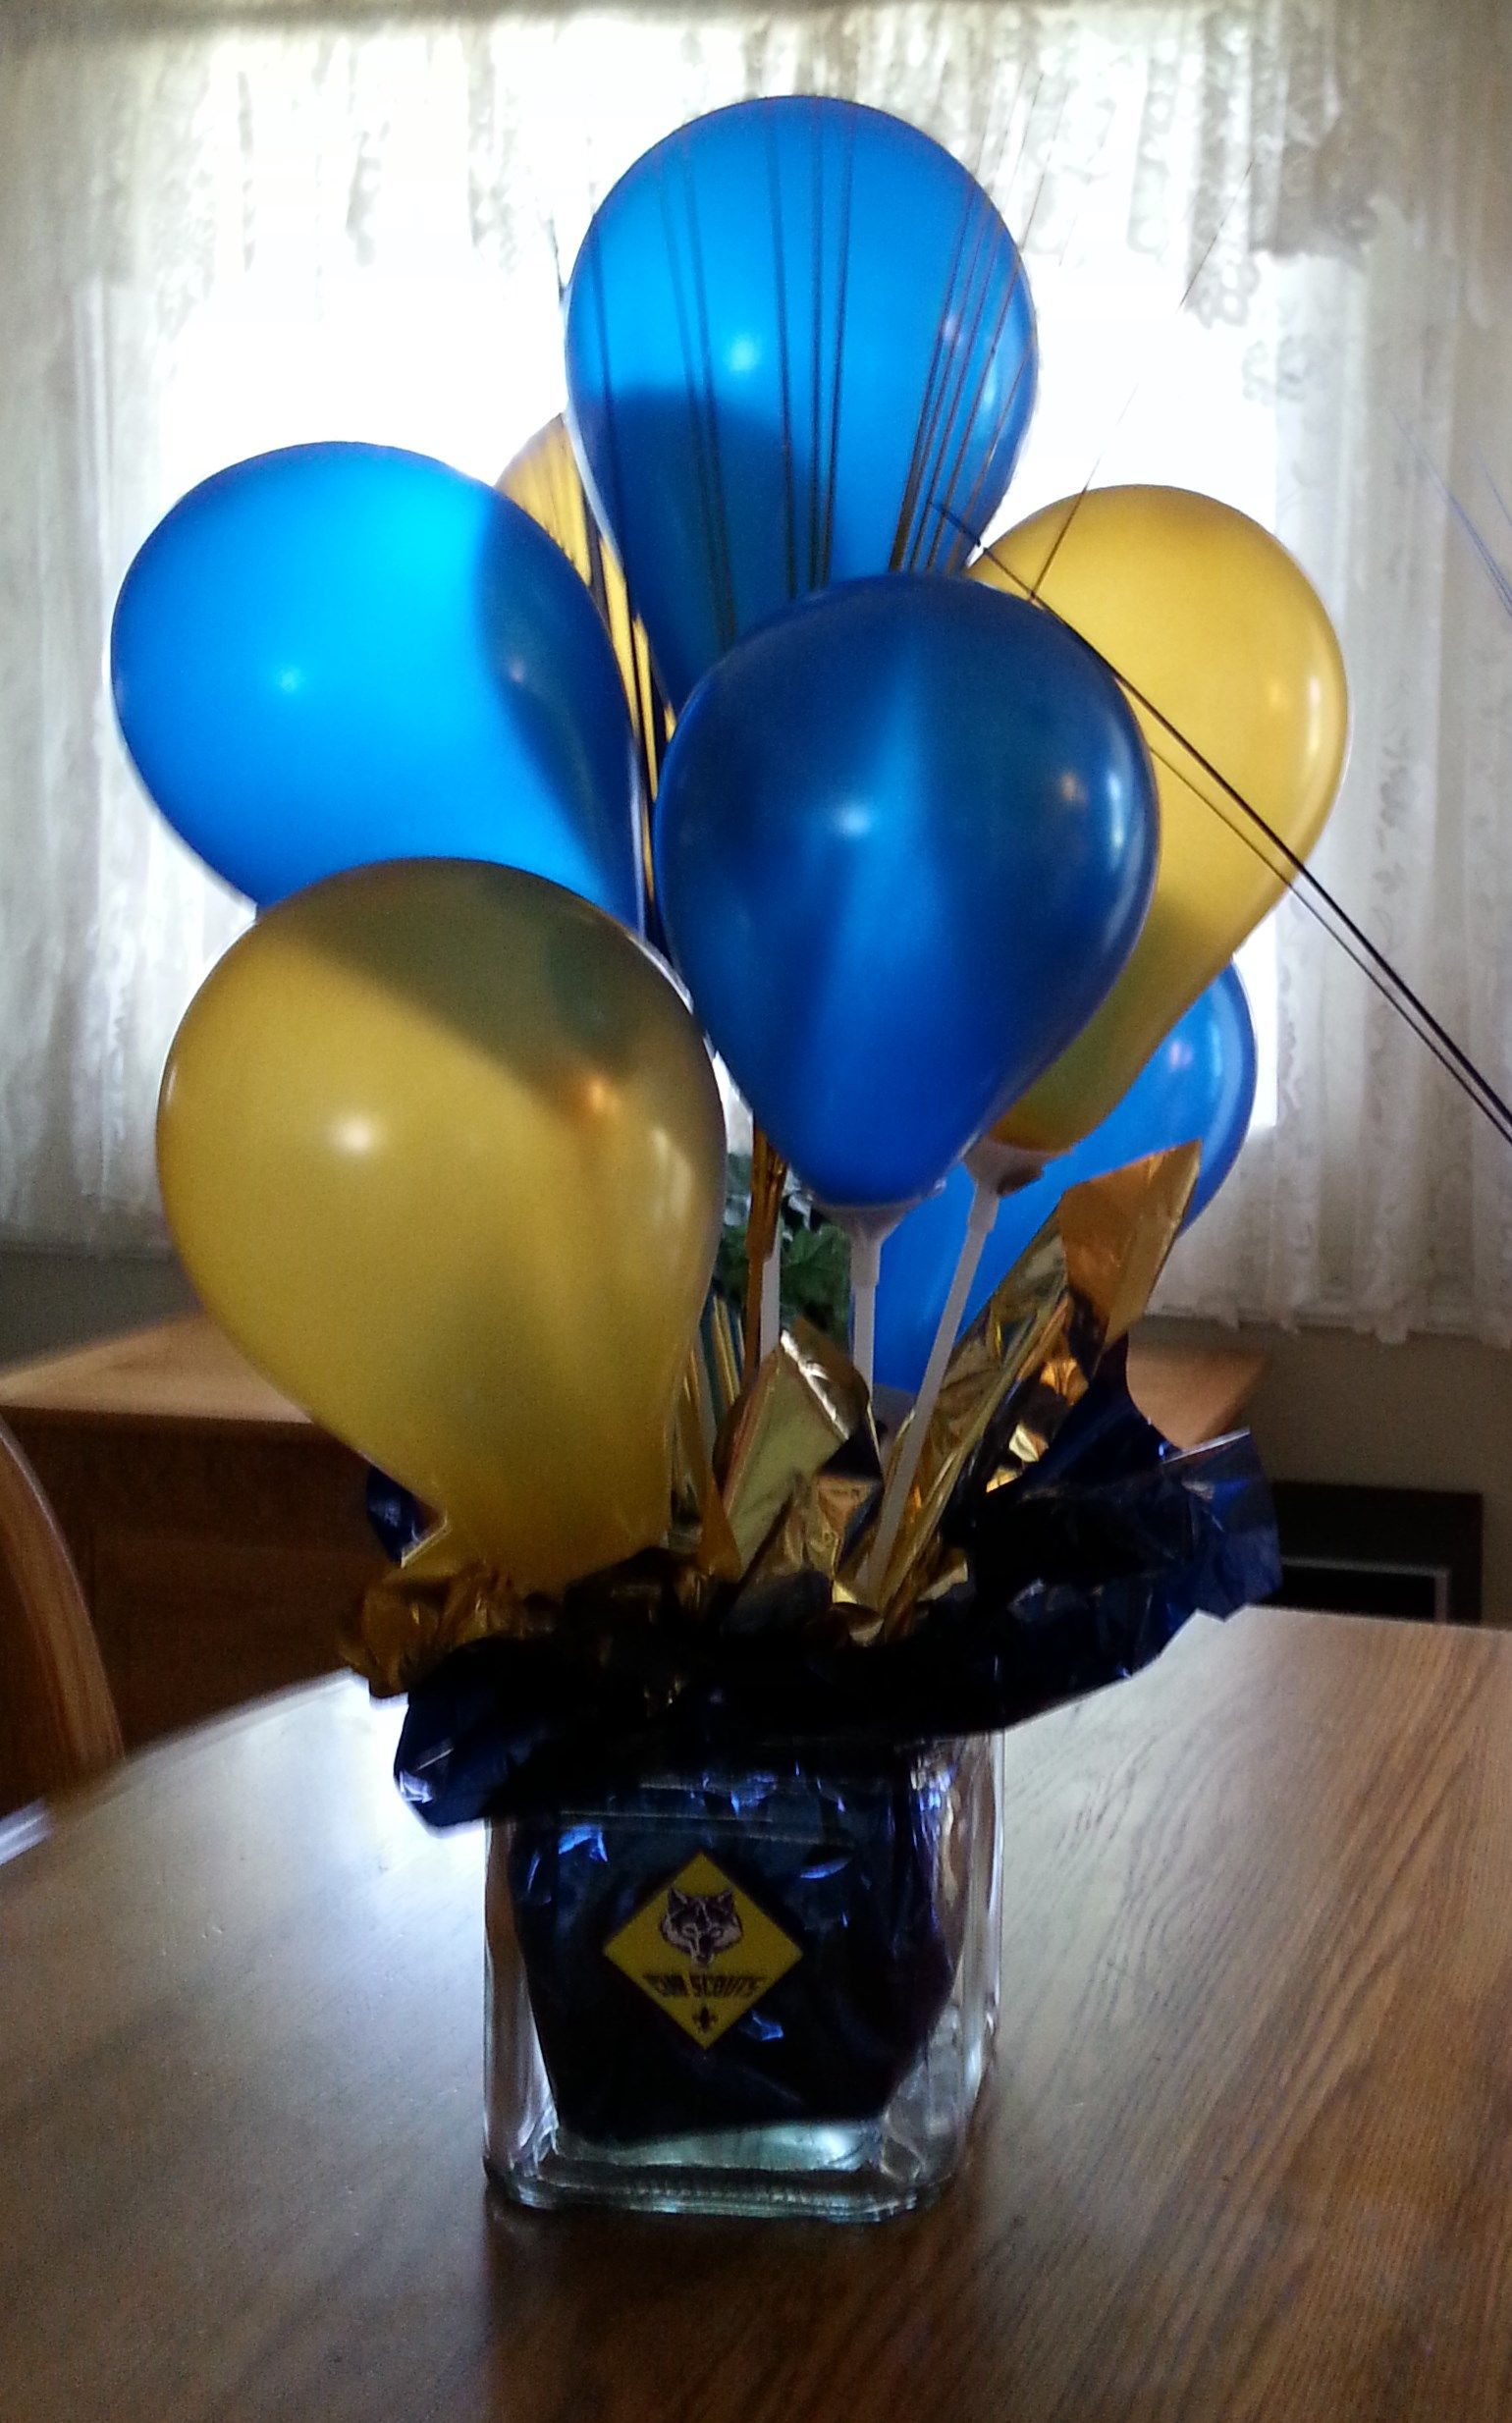 Enjoyable Cub Scout Blue And Gold Balloon Centerpiece Using 5 Ballons Download Free Architecture Designs Embacsunscenecom